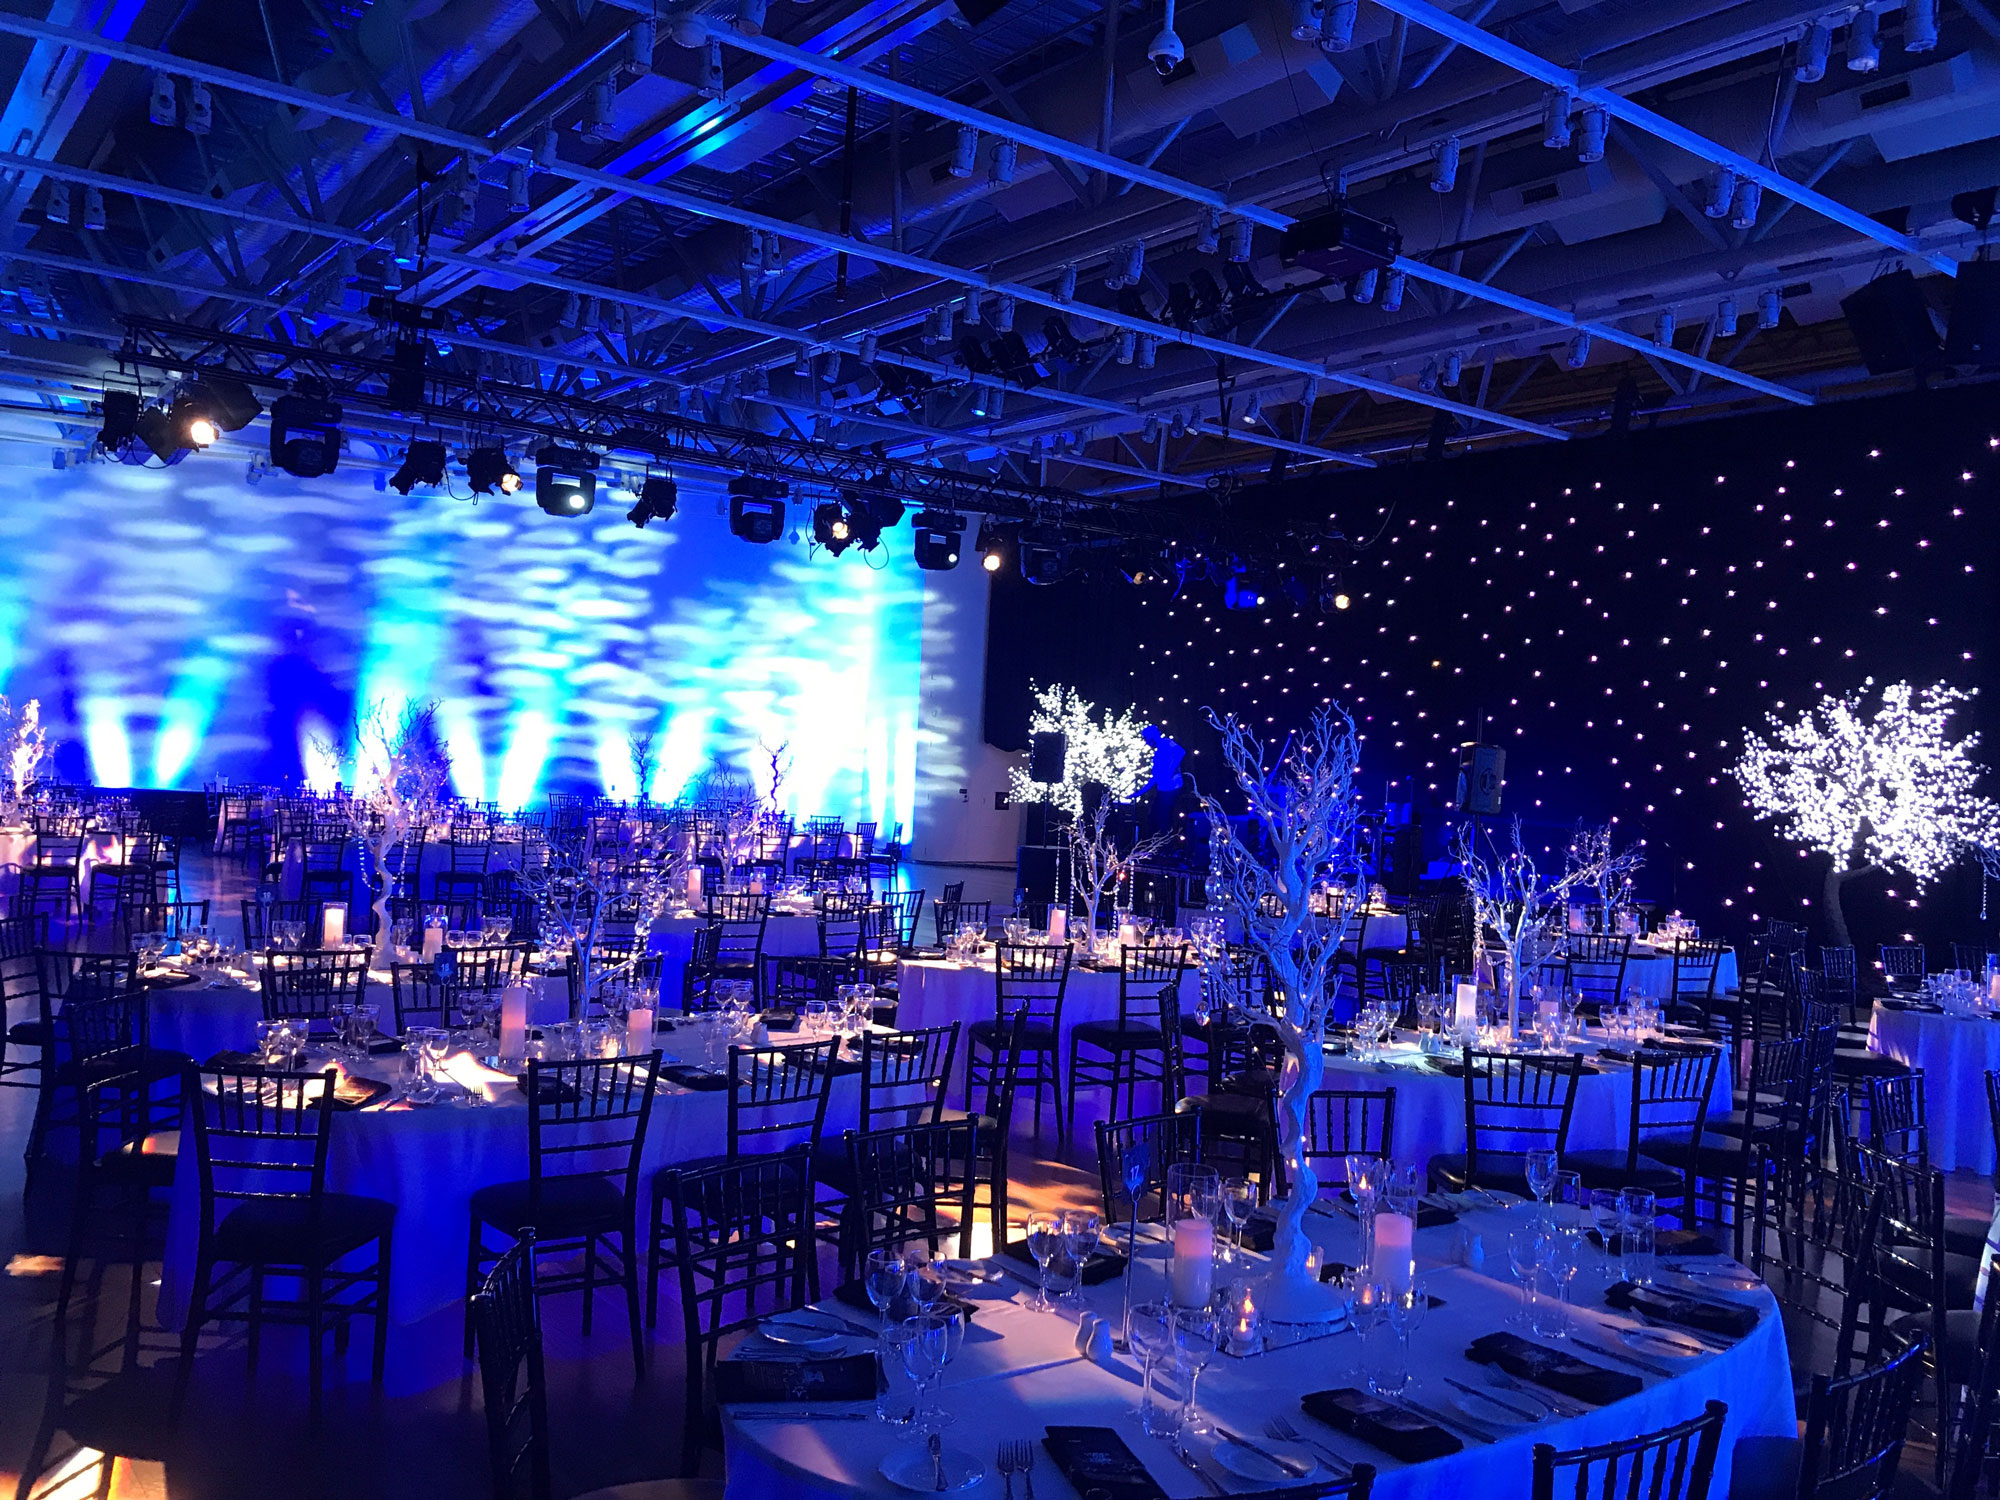 A room full of tables and sparkly trees